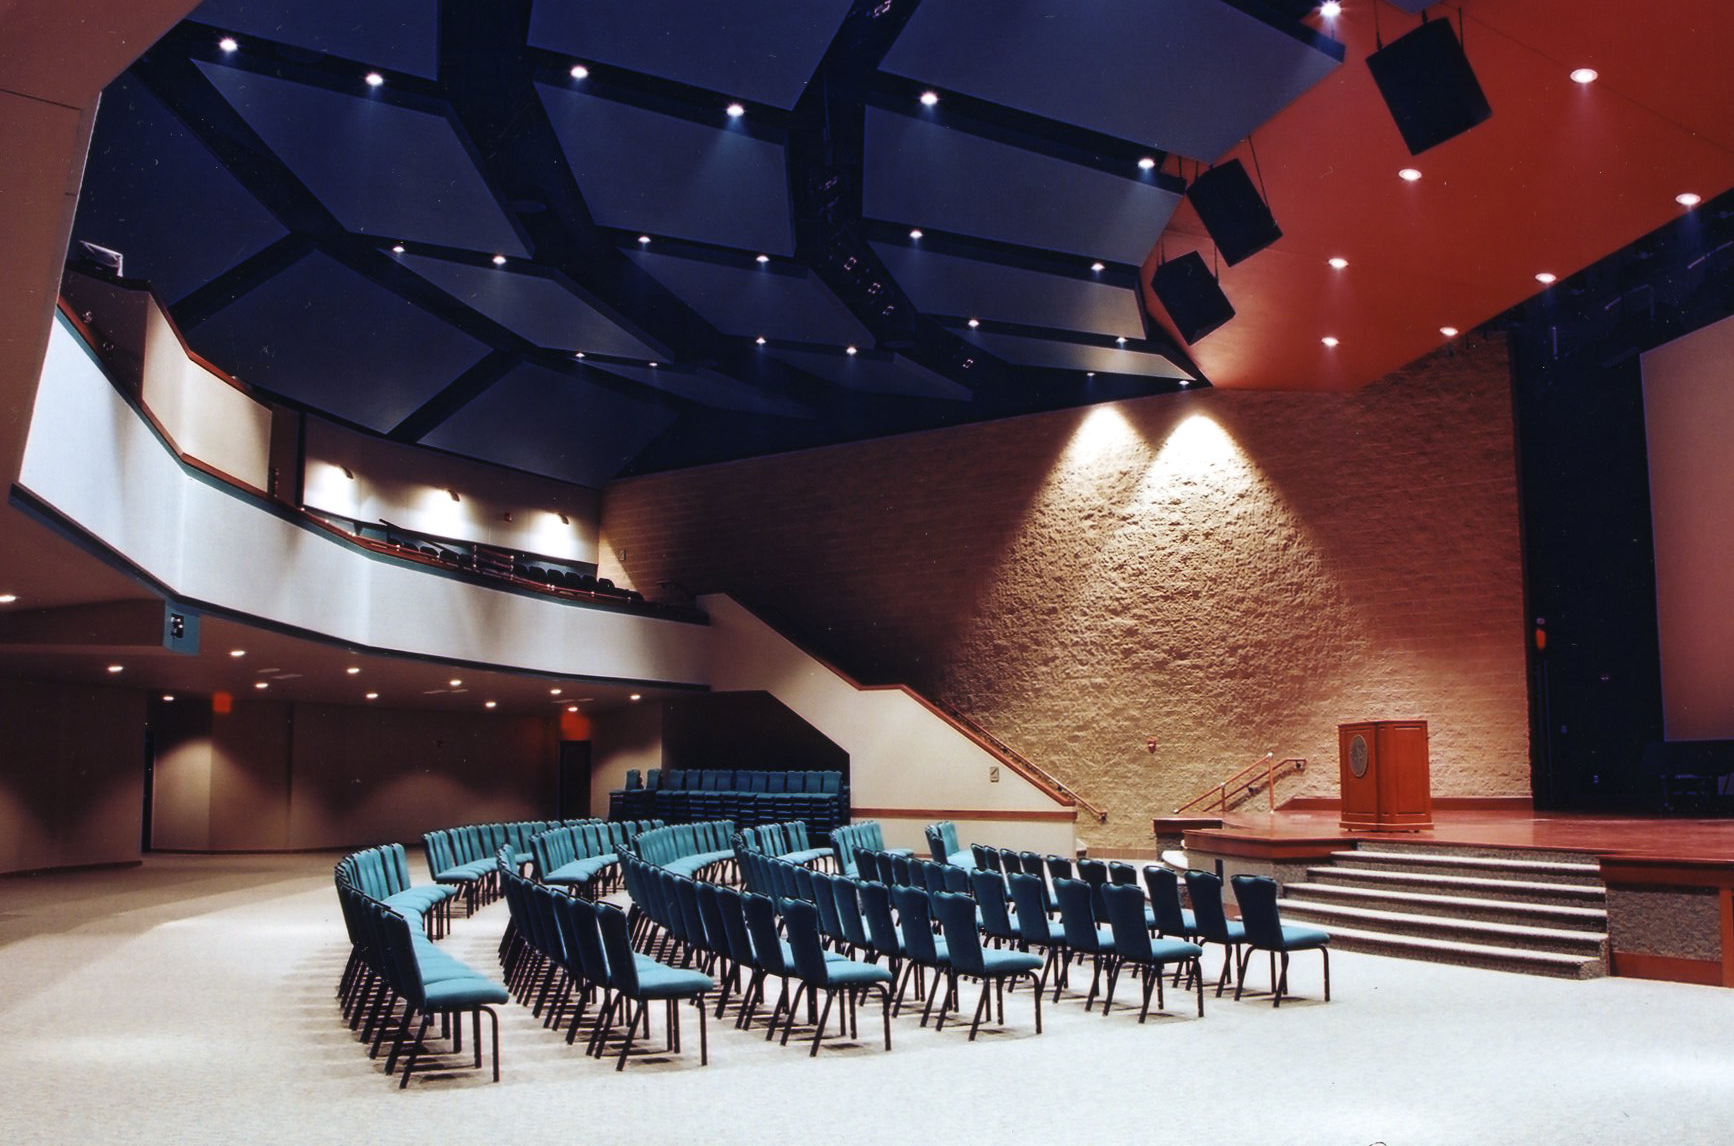 www.rcmarchitects.com - winebrenner theological seminary (6)